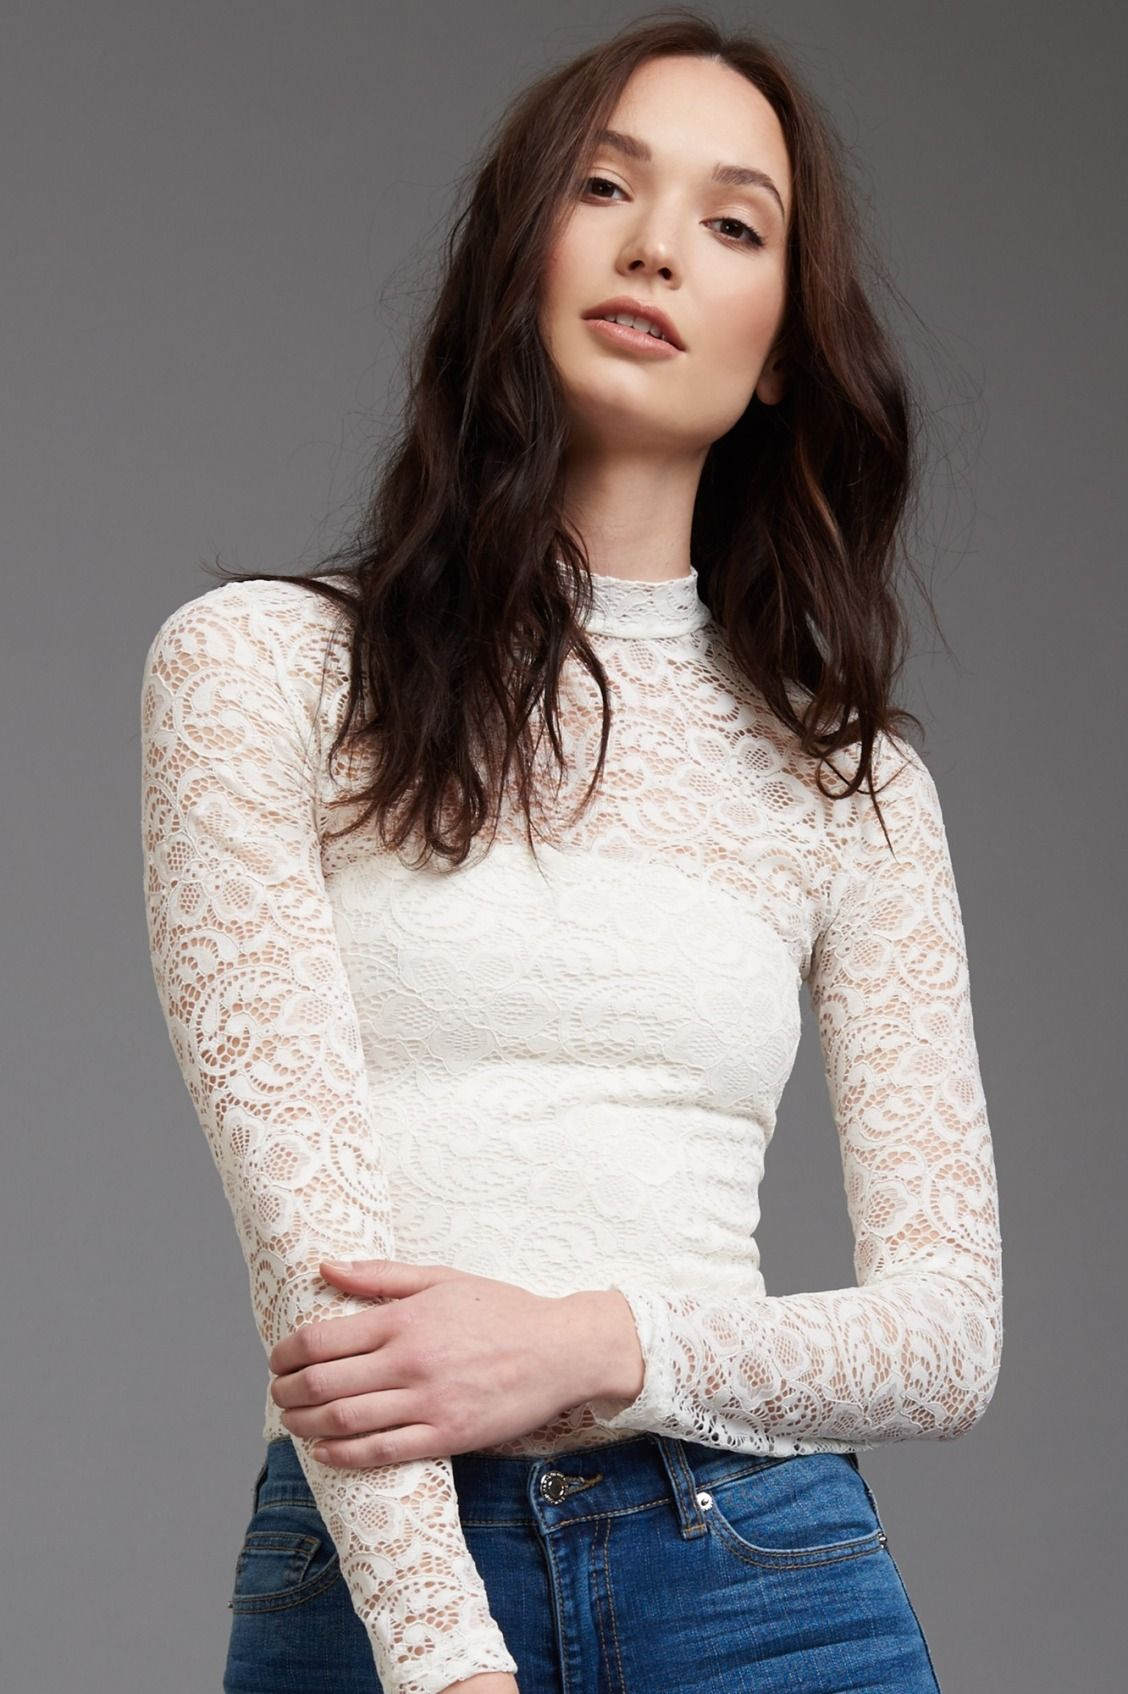 Lace bodysuit with high waisted jeans  Lacey baby Lace Mock Neck Top  Flirty  Pinterest  Winter wardrobe